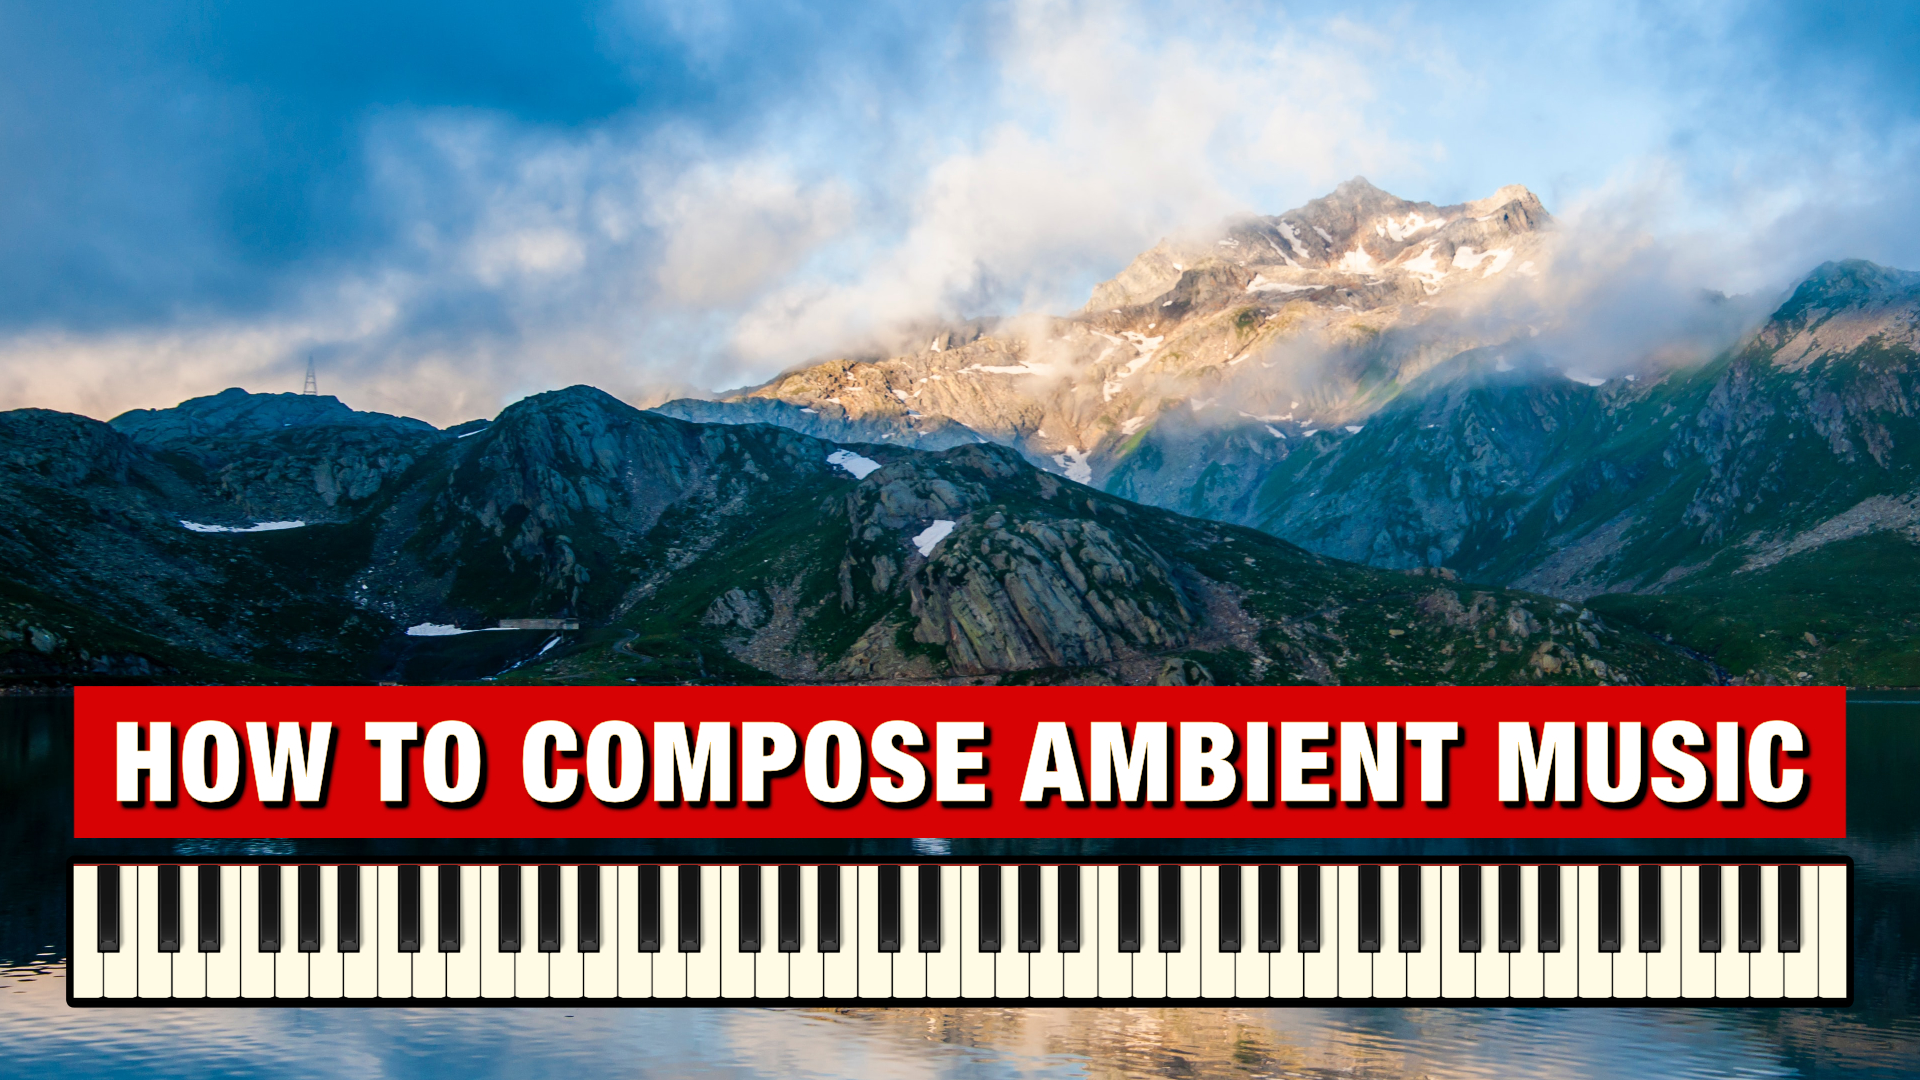 Ambient%20Music%20Composition%20-%20Website%20Image